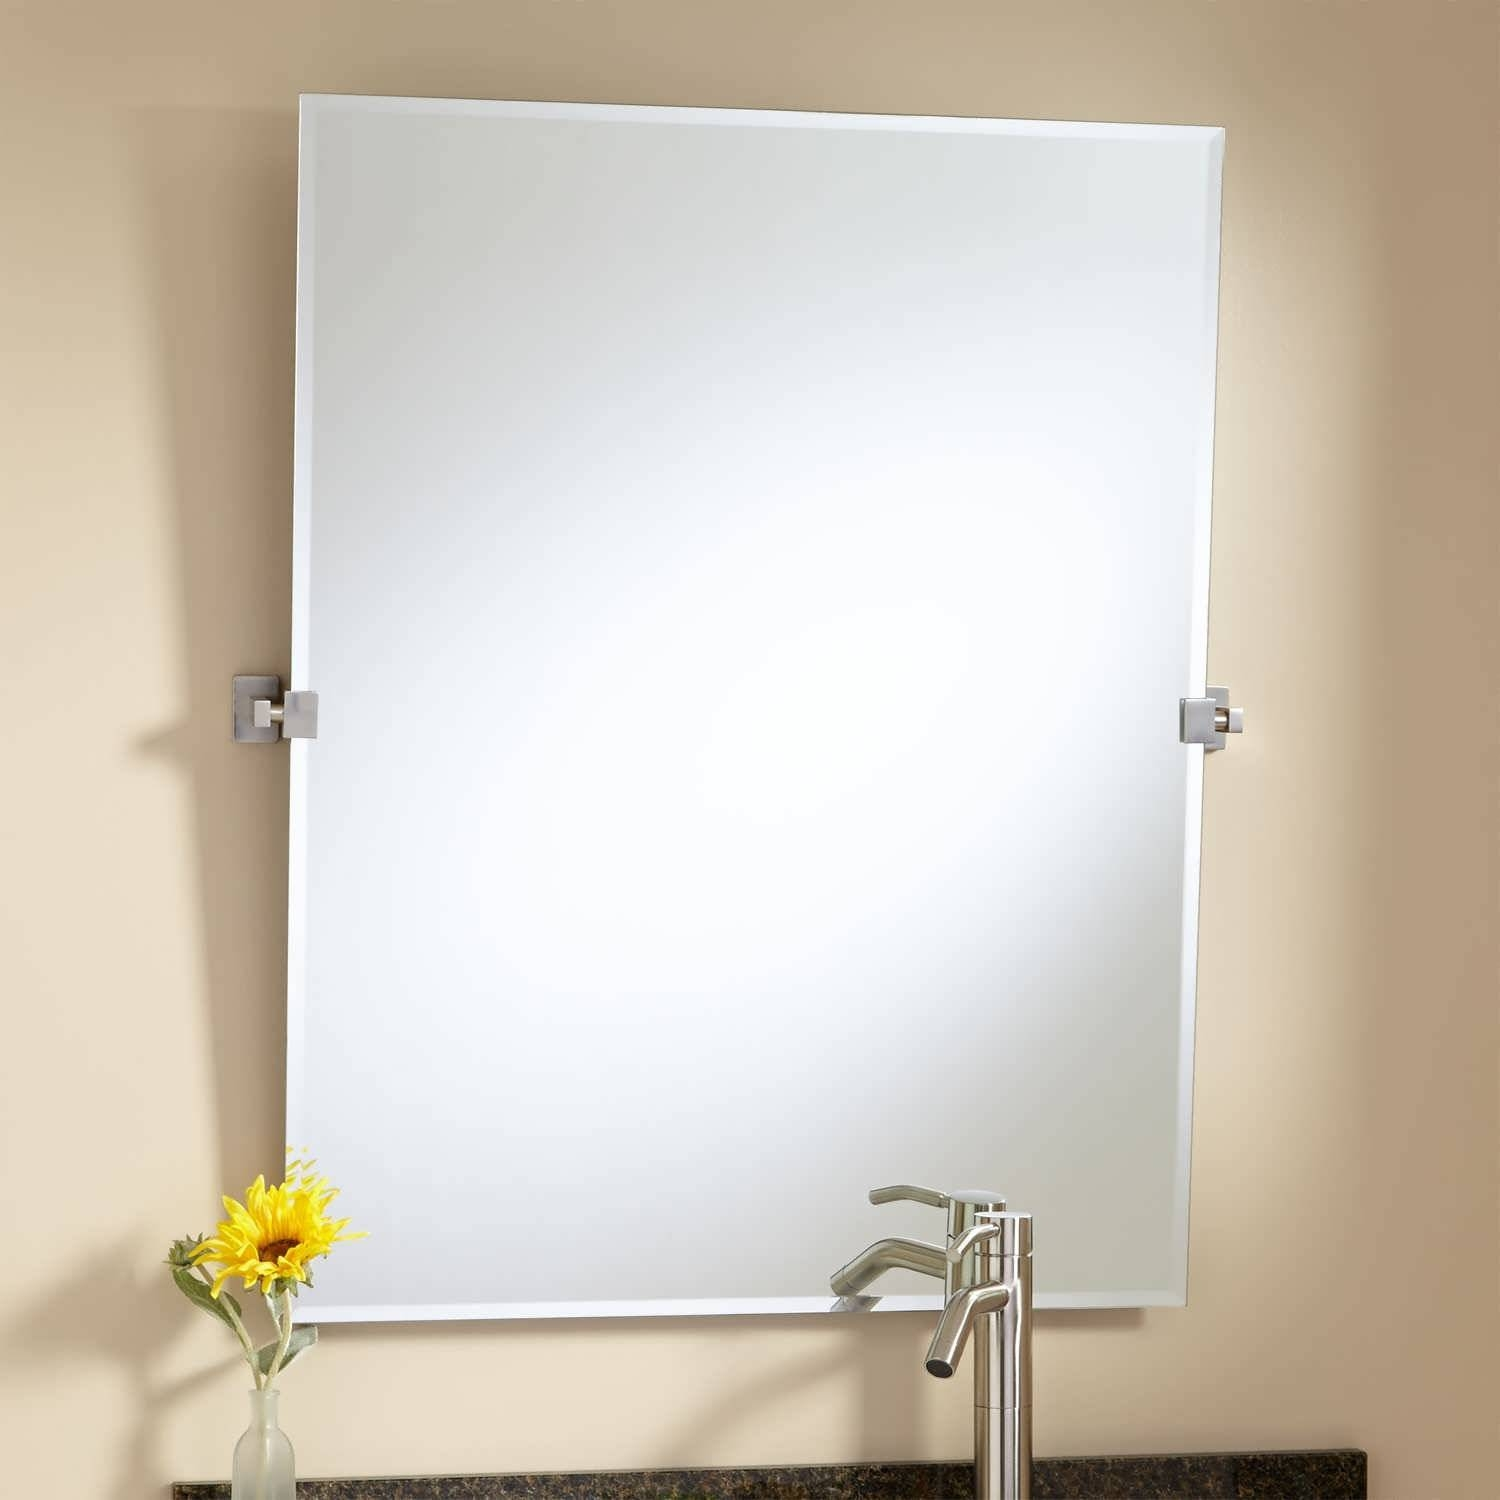 Bathroom : Unusual Bathroom Mirrors Bedroom Mirrors 24X60 Mirror pertaining to Unusual Mirrors for Bathrooms (Image 12 of 25)